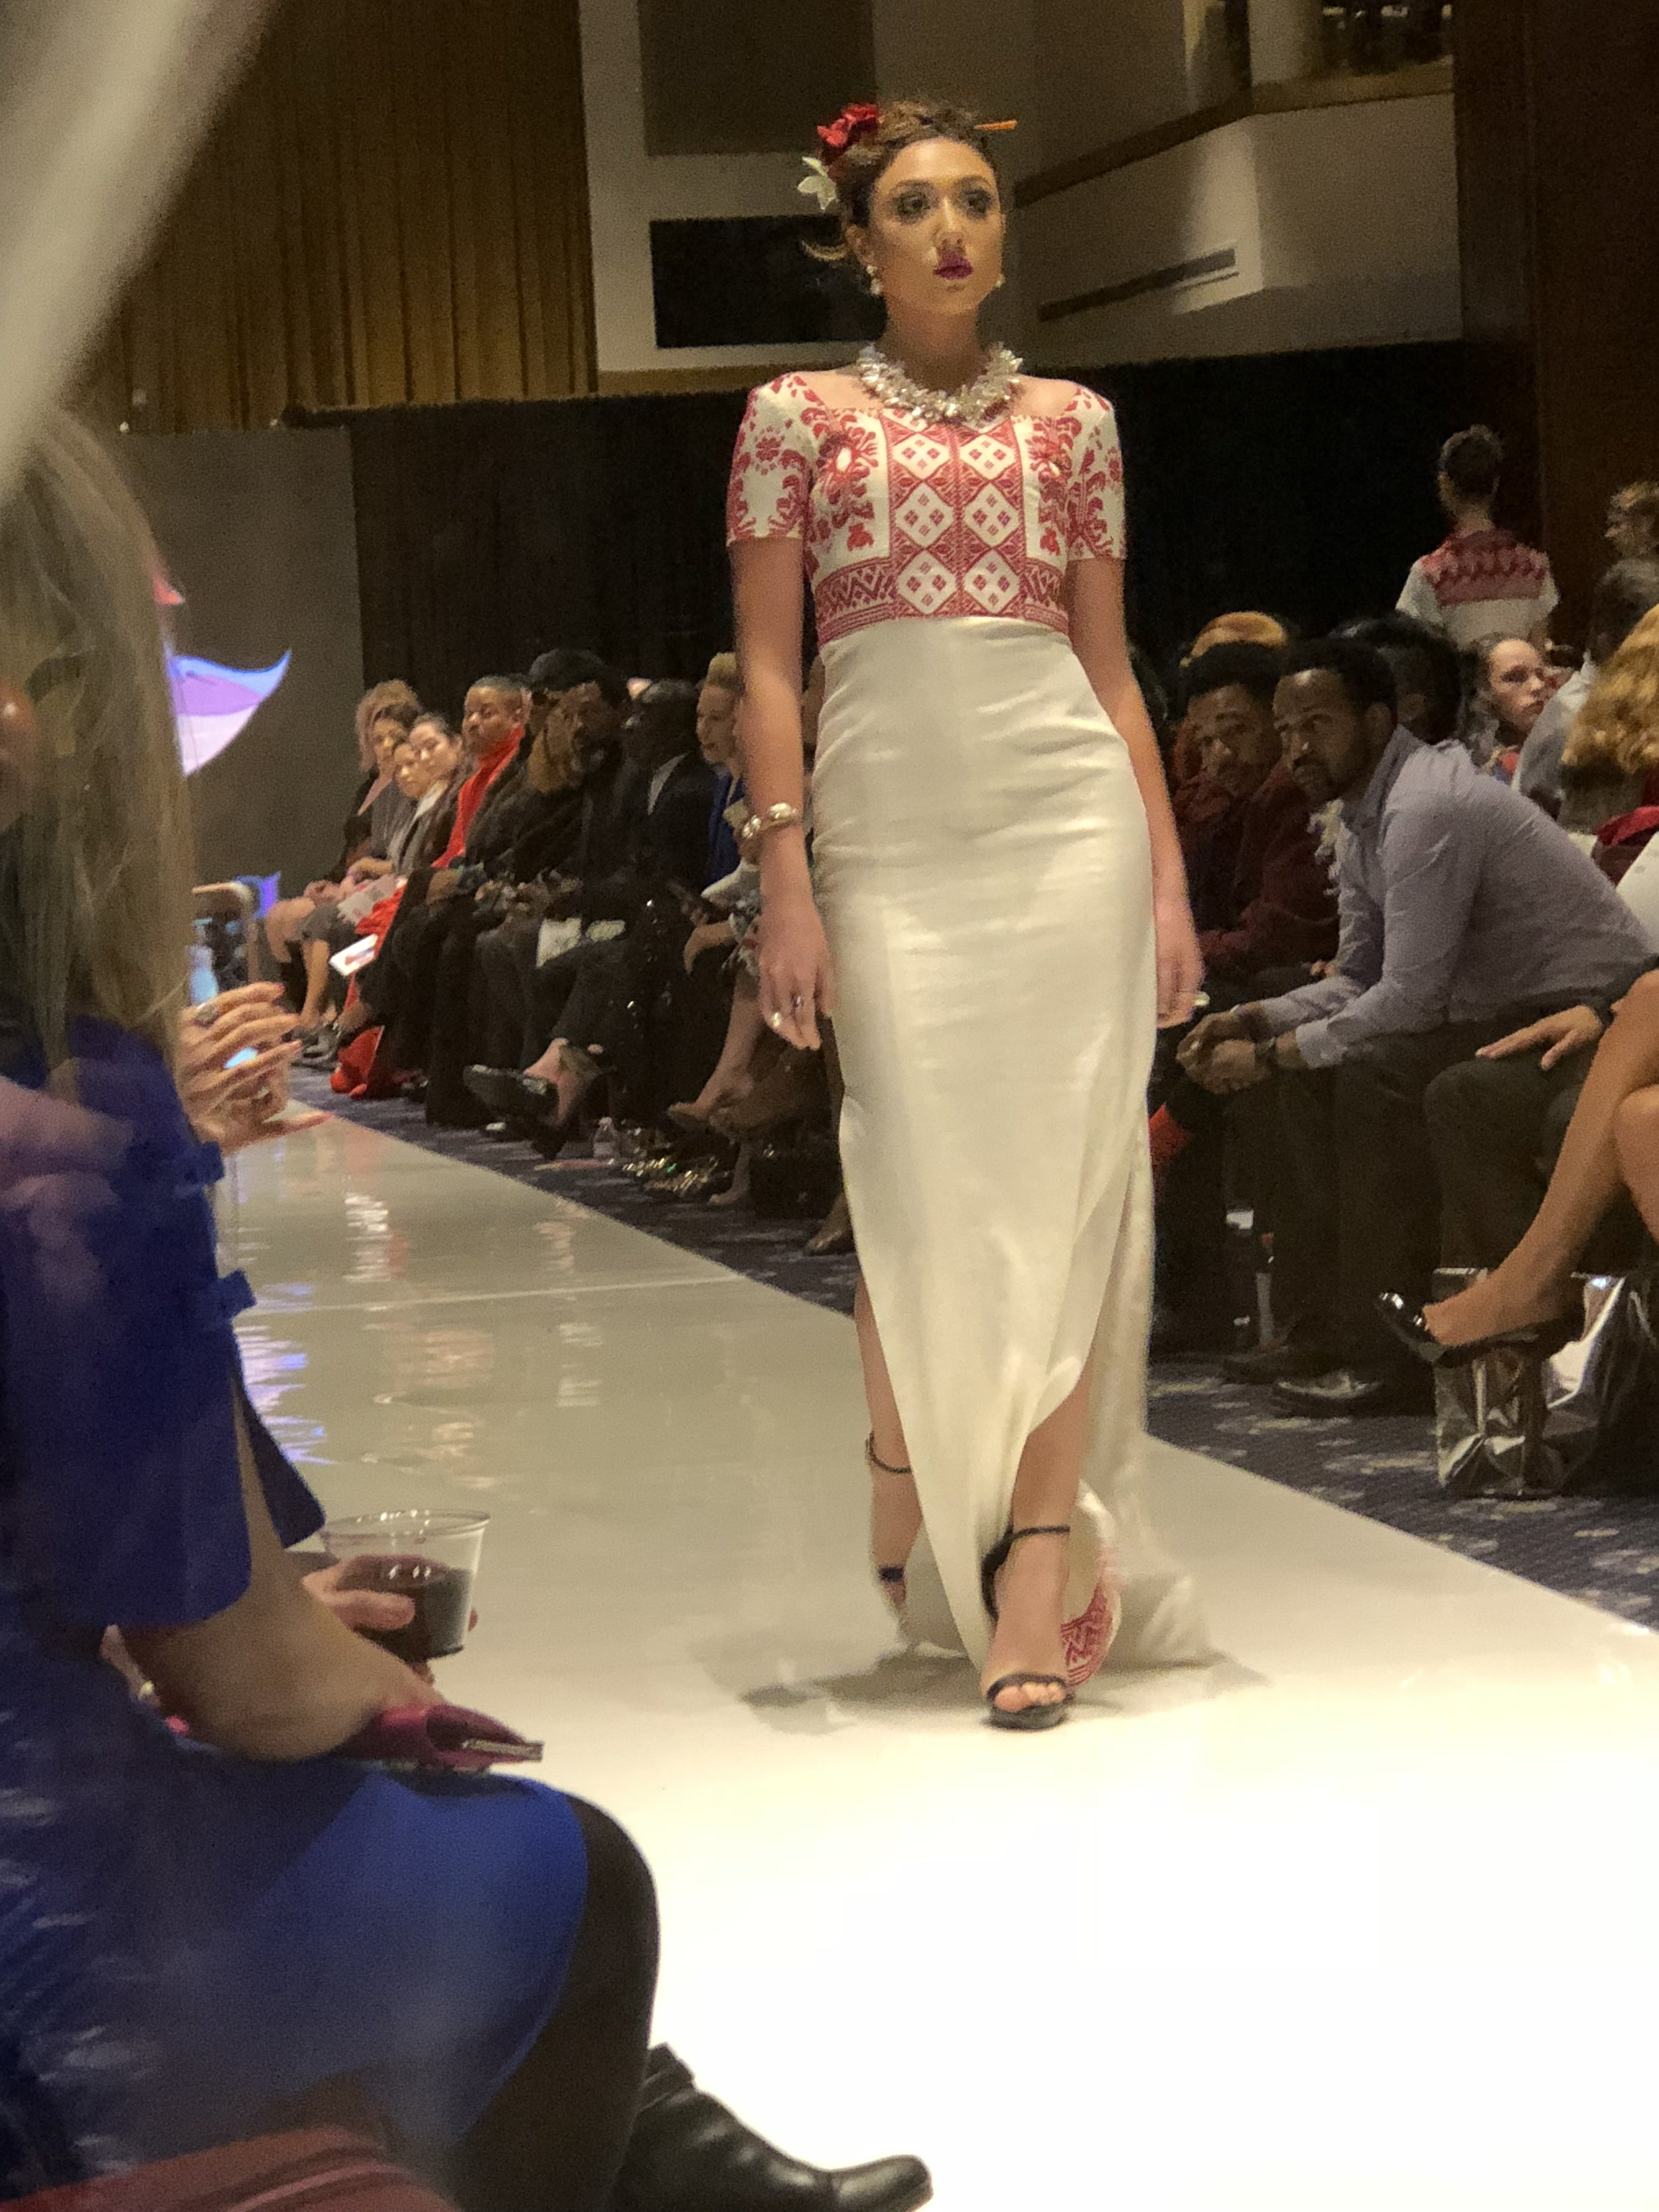 DCFW Recap (Finally): The Shows - My FW18 DC Fashion Week experience.